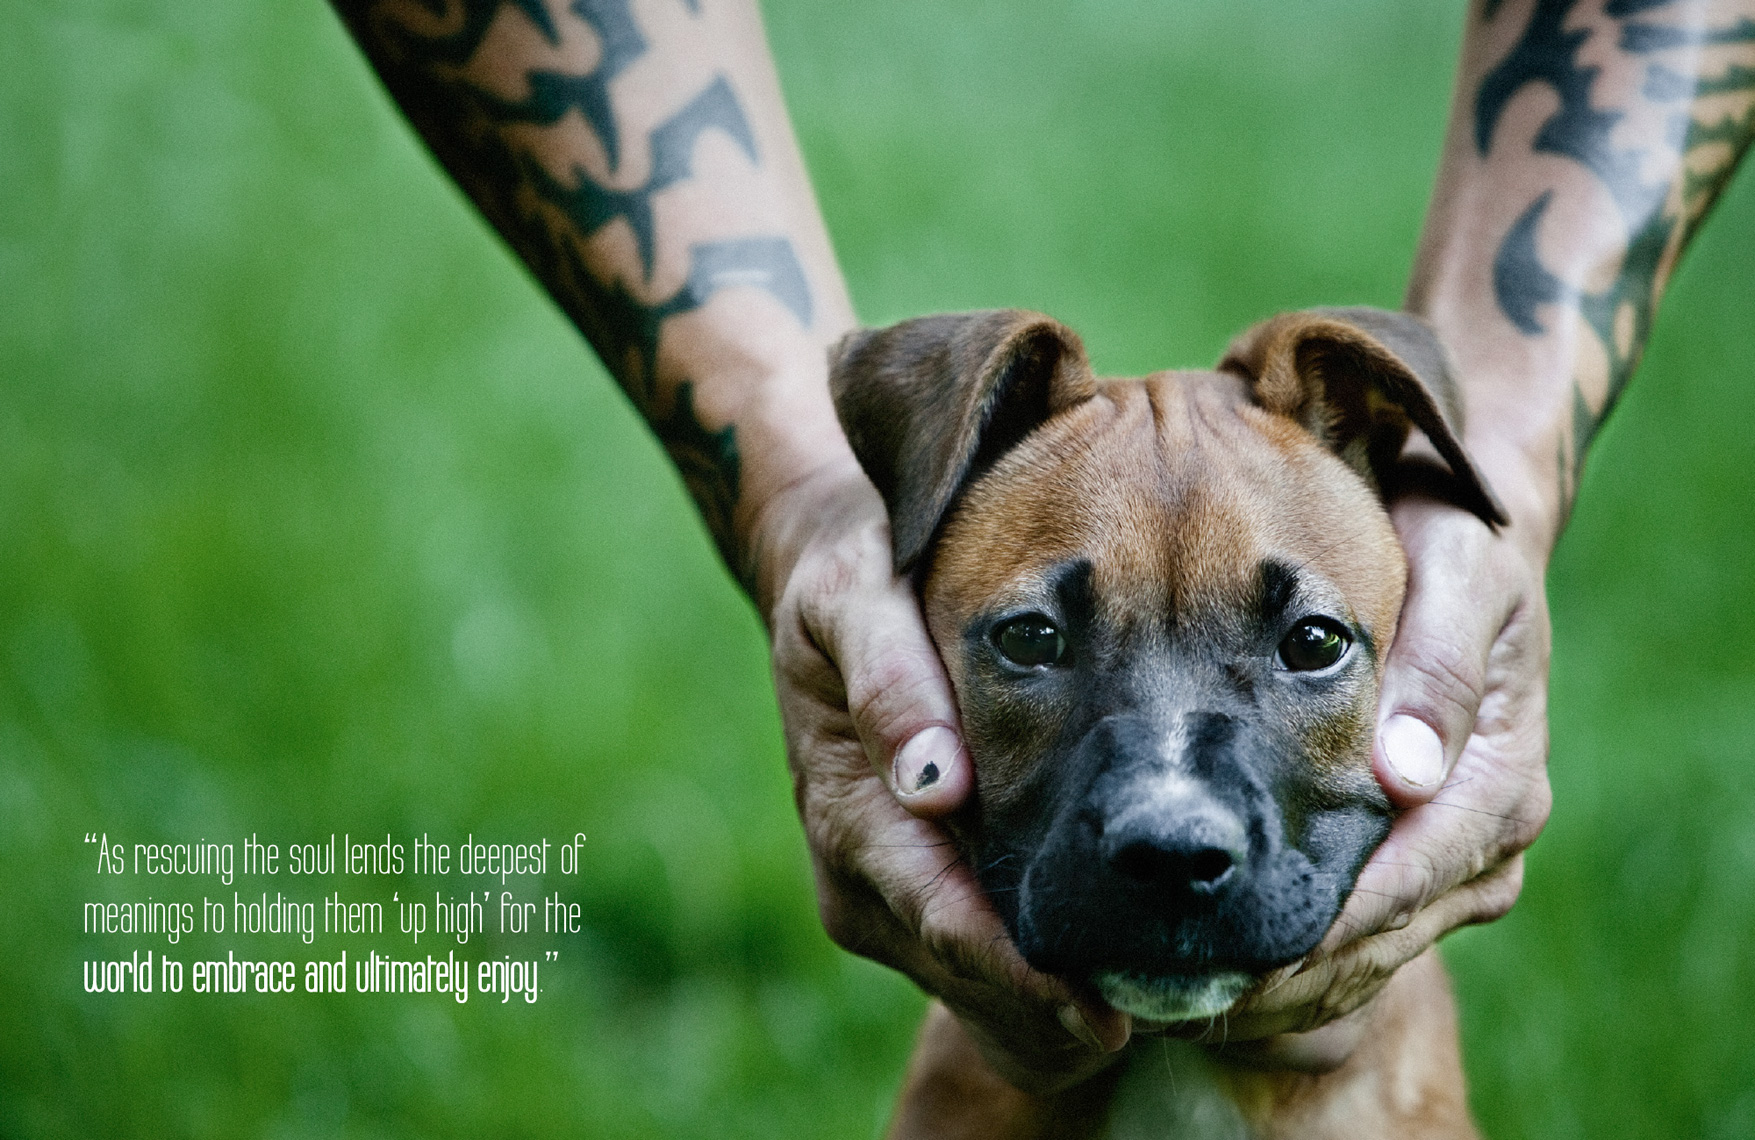 Los Angeles Dog Photography, Michael Brian, Tyson Kilmer, Dog Trainer, Rescuing the Soul